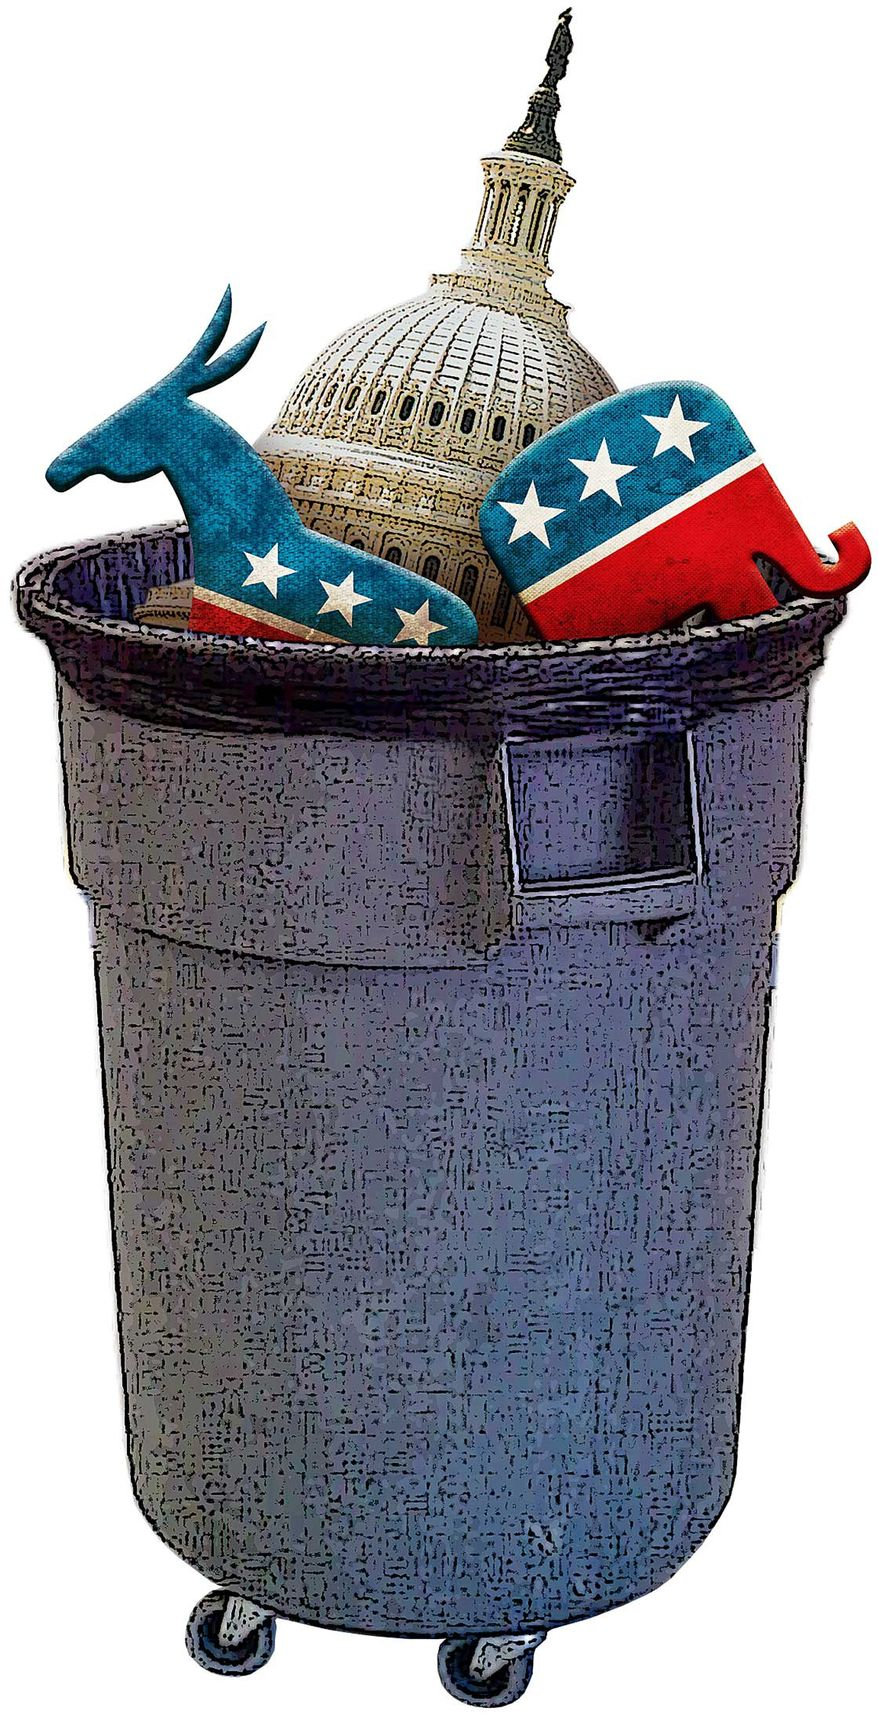 Congress' Failure to Do Its Job Illustration by Greg Groesch/The Washington Times